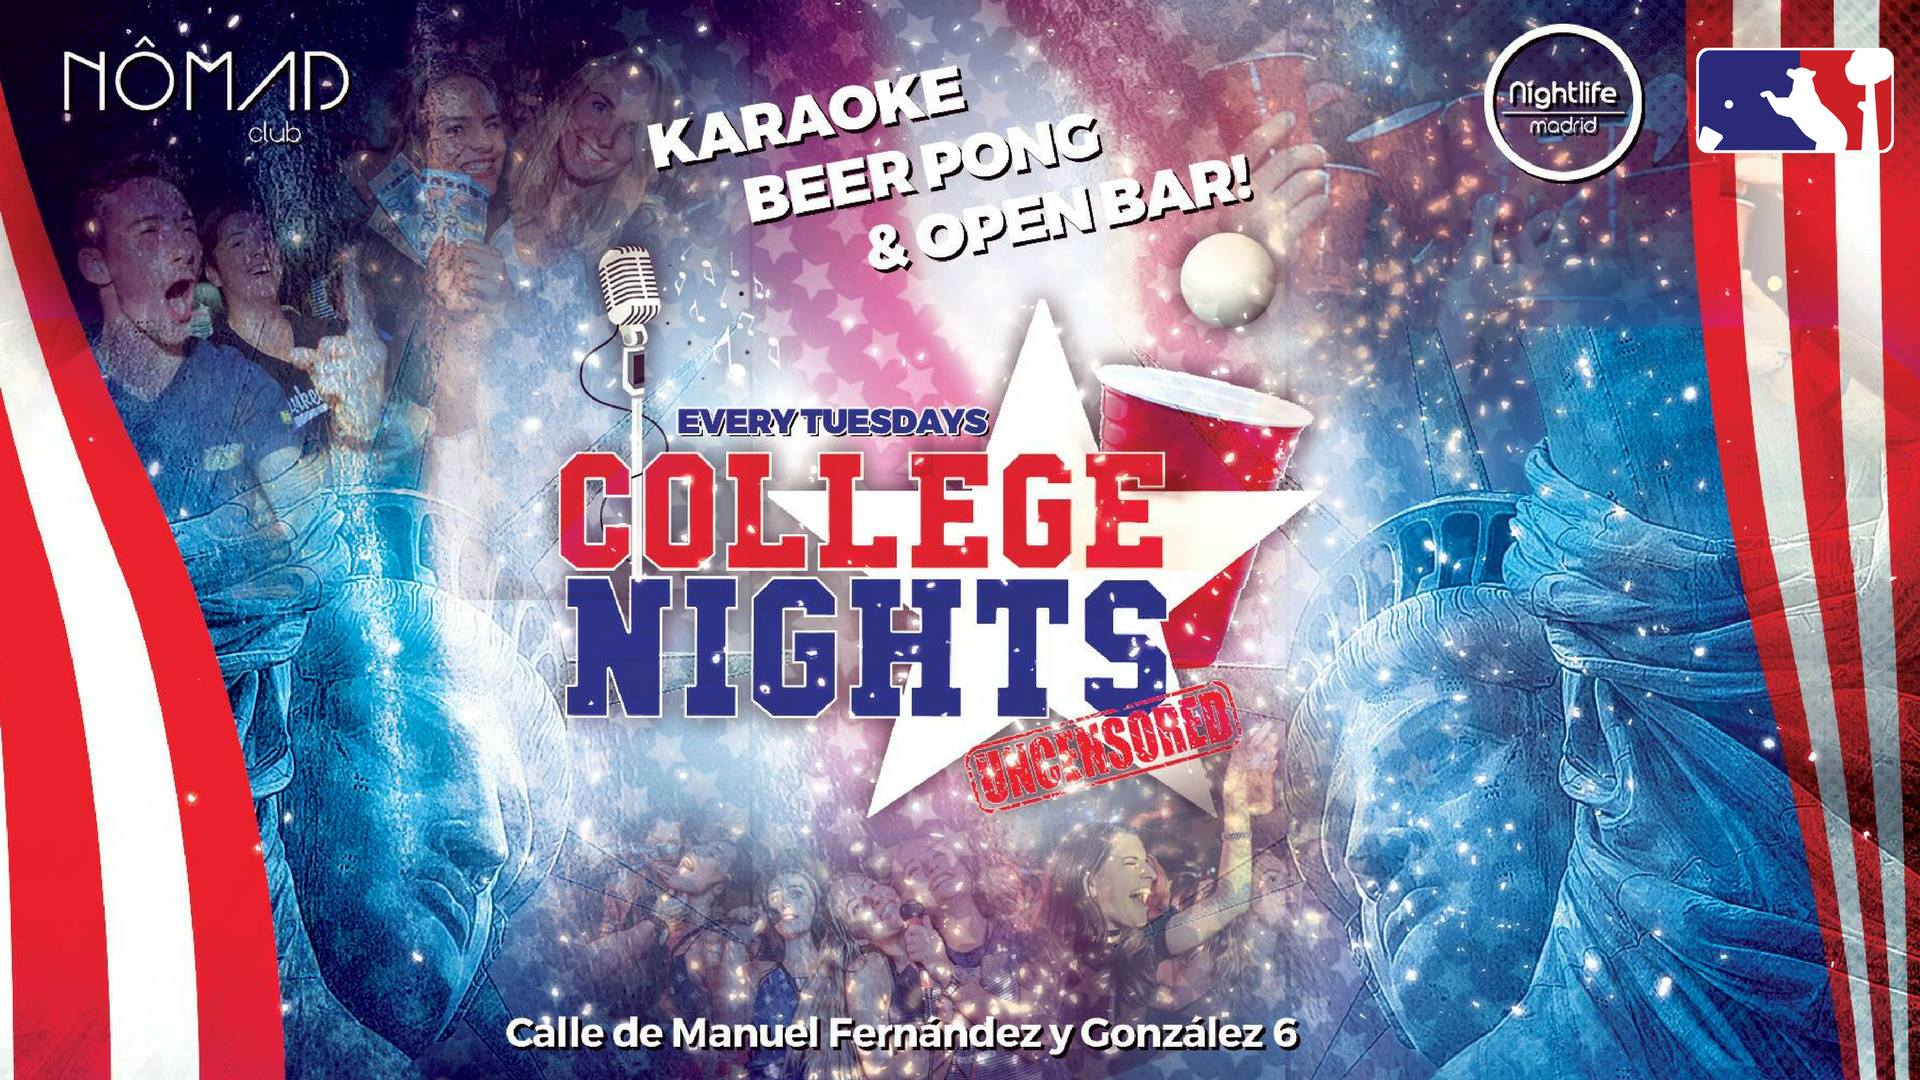 Nomad Club College Nights - Karaoke, Beer Pong & Open Bar